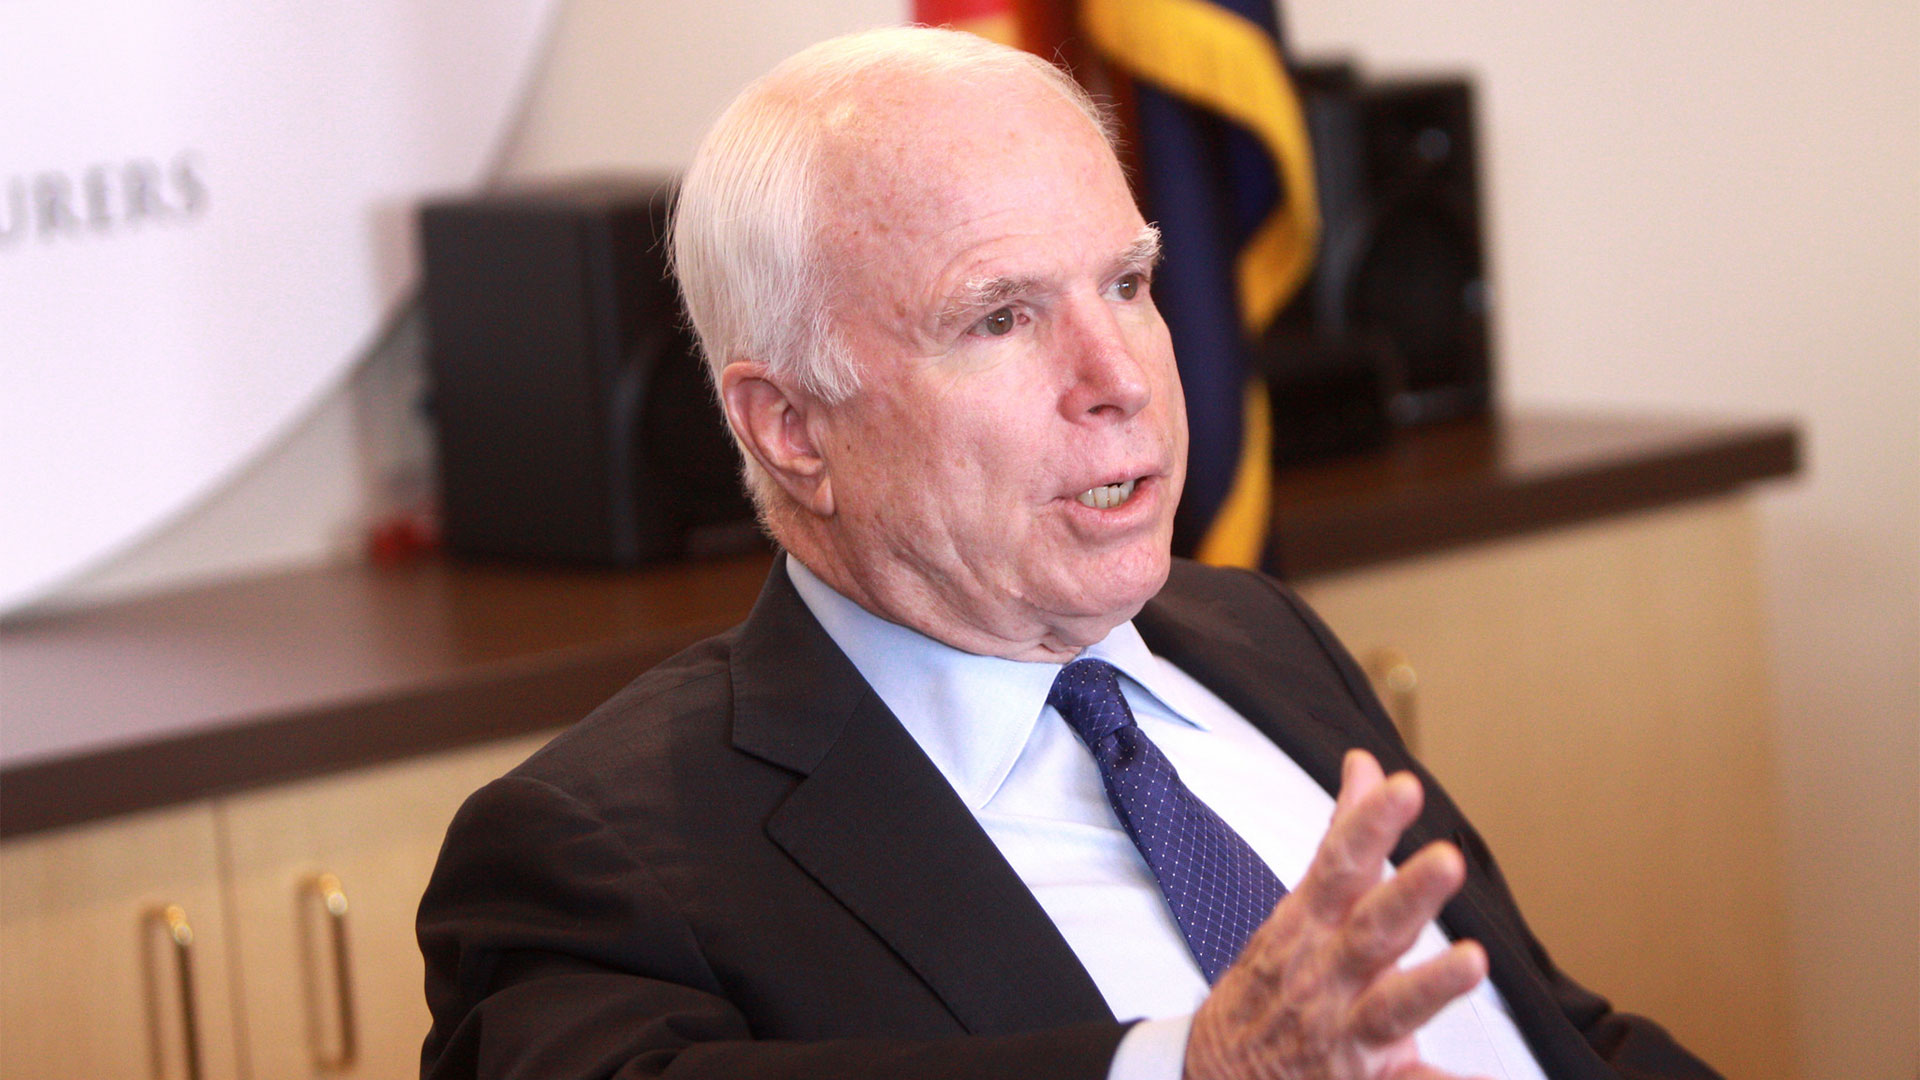 Senator John McCain speaking at a business roundtable hosted by the Arizona Chamber of Commerce & Industry in Phoenix, Arizona in 2013.